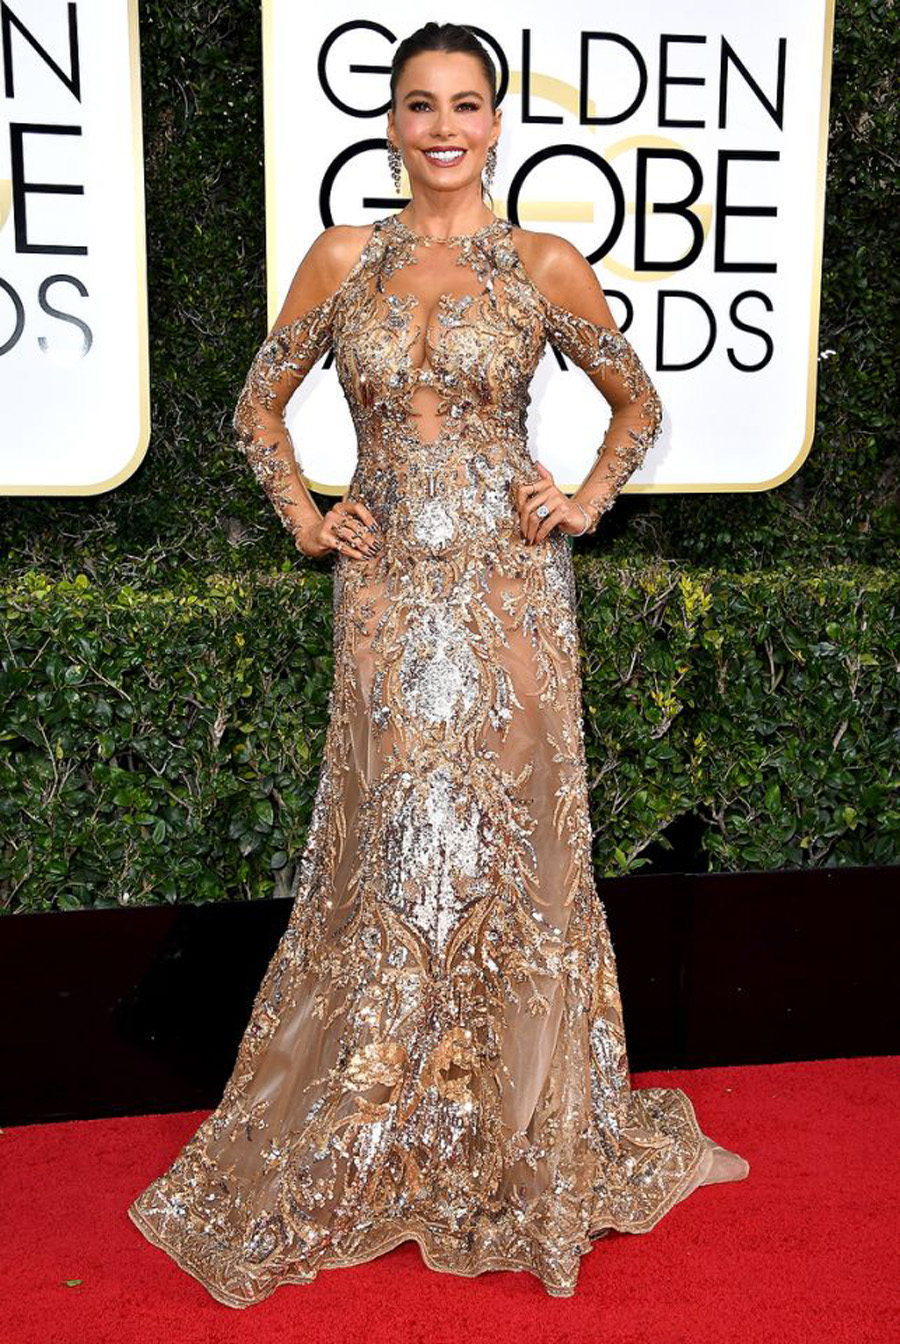 2017 Golden Globes Looks - Sofia Vergara